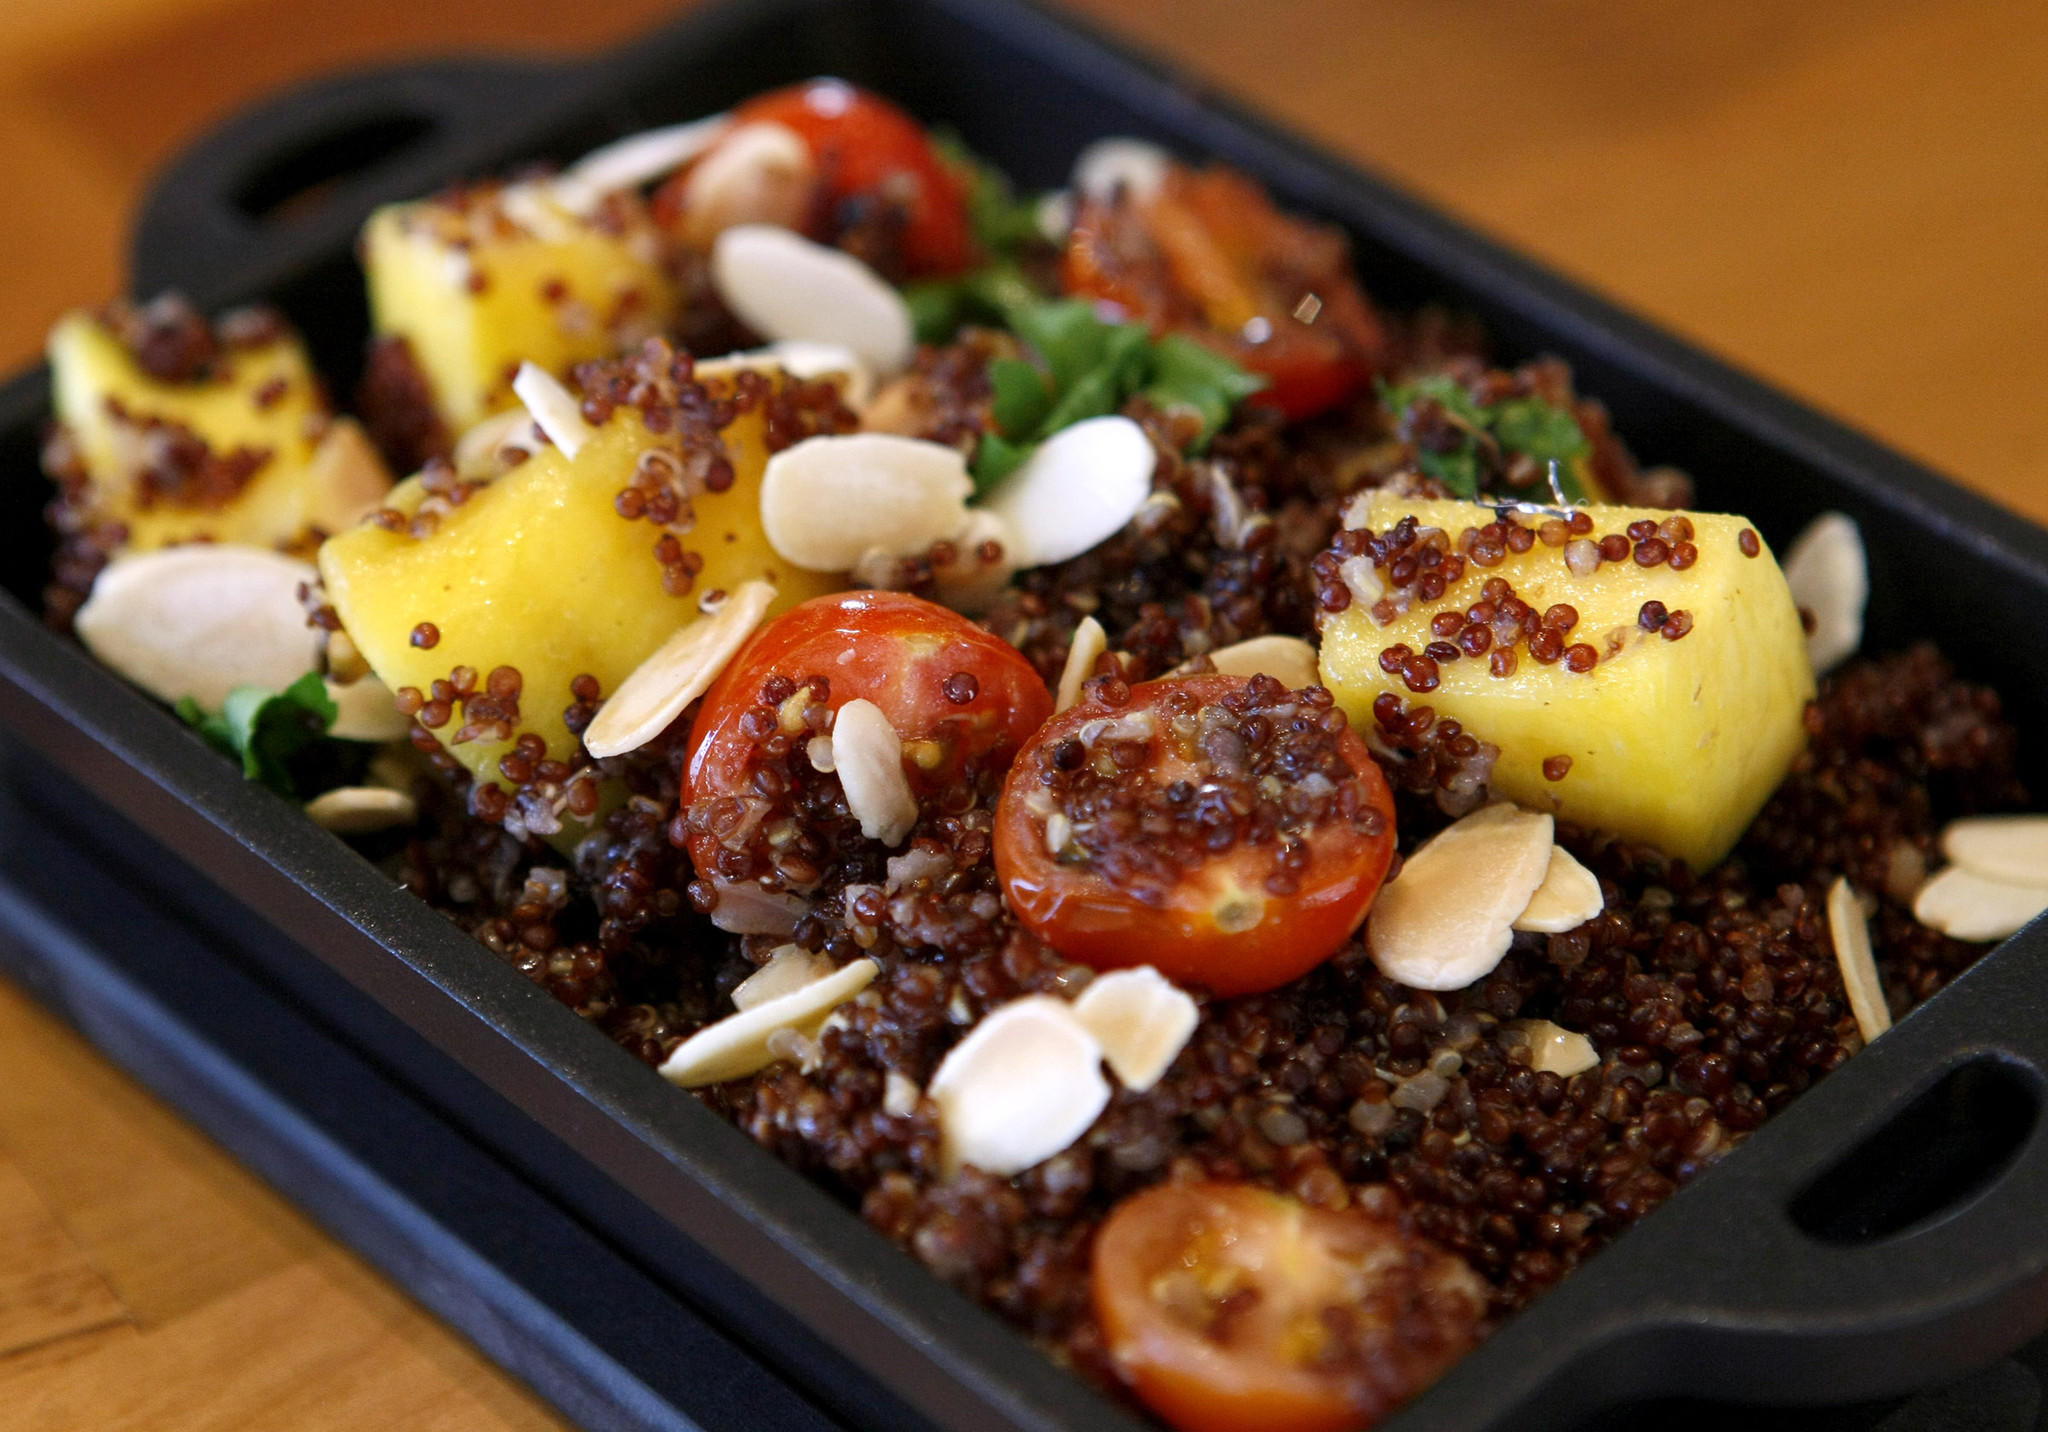 The Peruvian purple quinoa is served warm with shallots, Italian parsley, almonds and sauted mango, at Brand158 Restaurant & Bar in on the 100 block of S. Brand in Glendale, on Thursday, January 2, 2014.